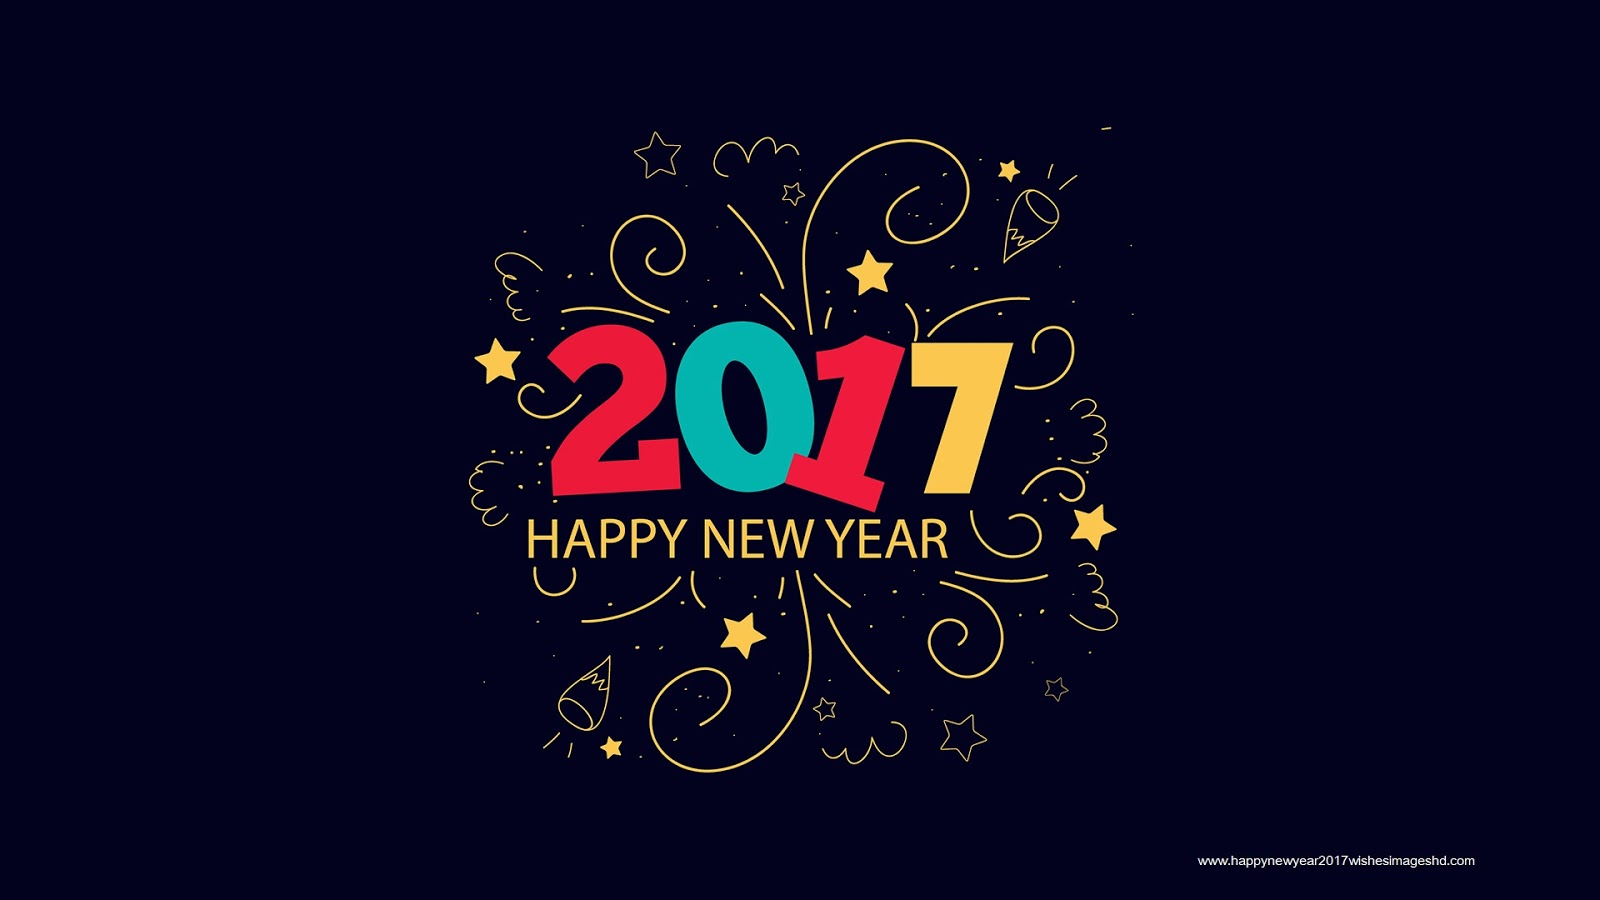 Happy New Year 2017 Warm Wishes Images Greetings ~ Happy New Year 2017 ...